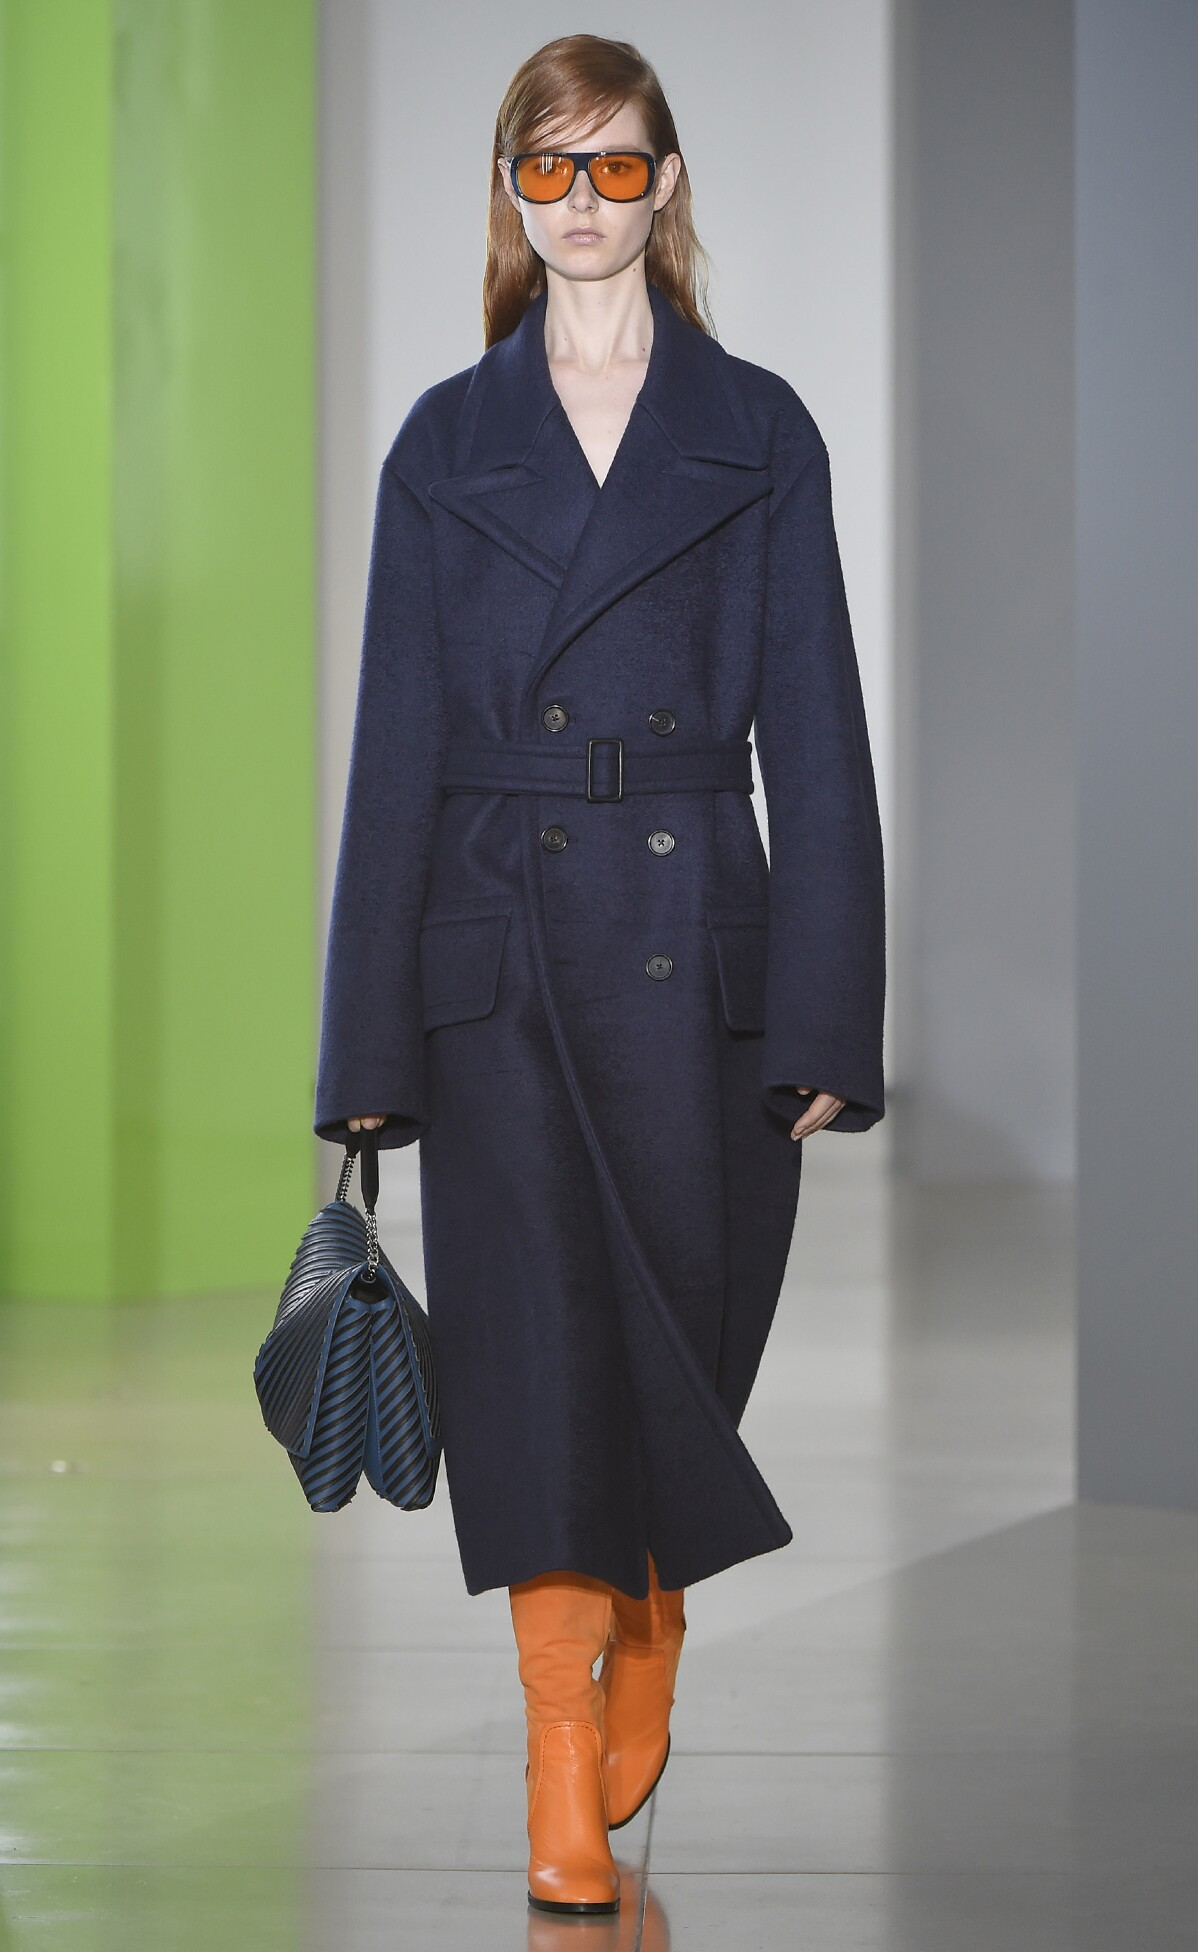 2015 Fashion Woman Model Jil Sander Collection Catwalk